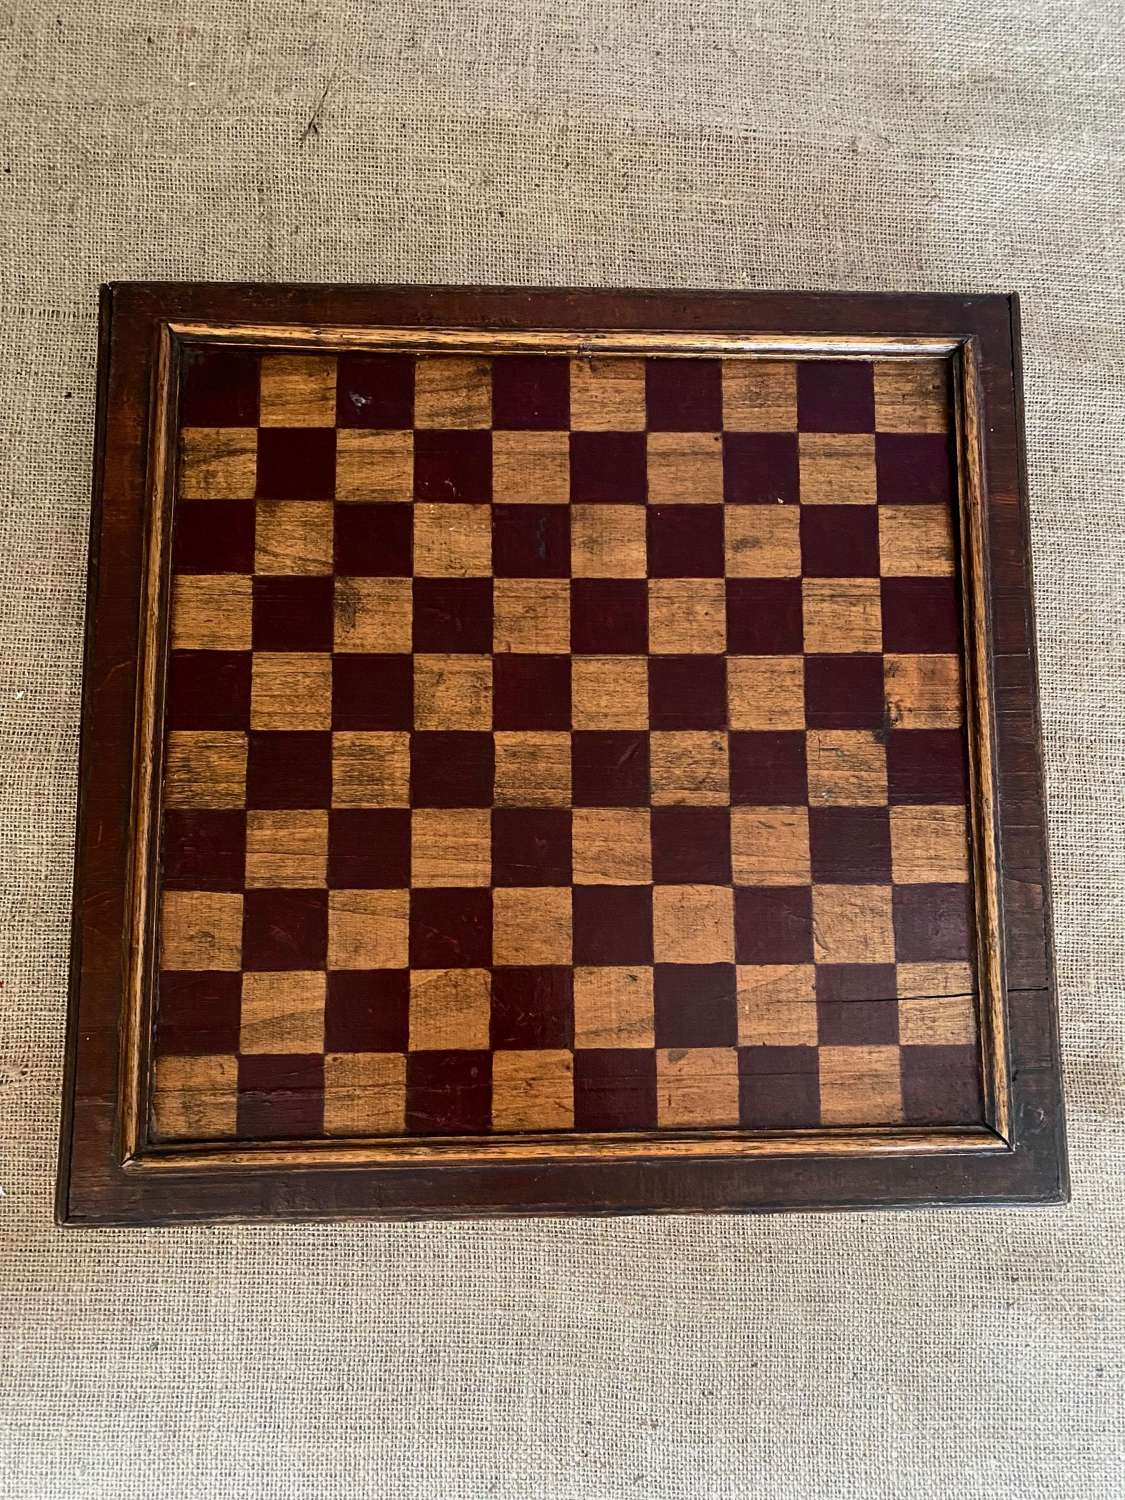 19th century draughts board with drawer underneath with draughts